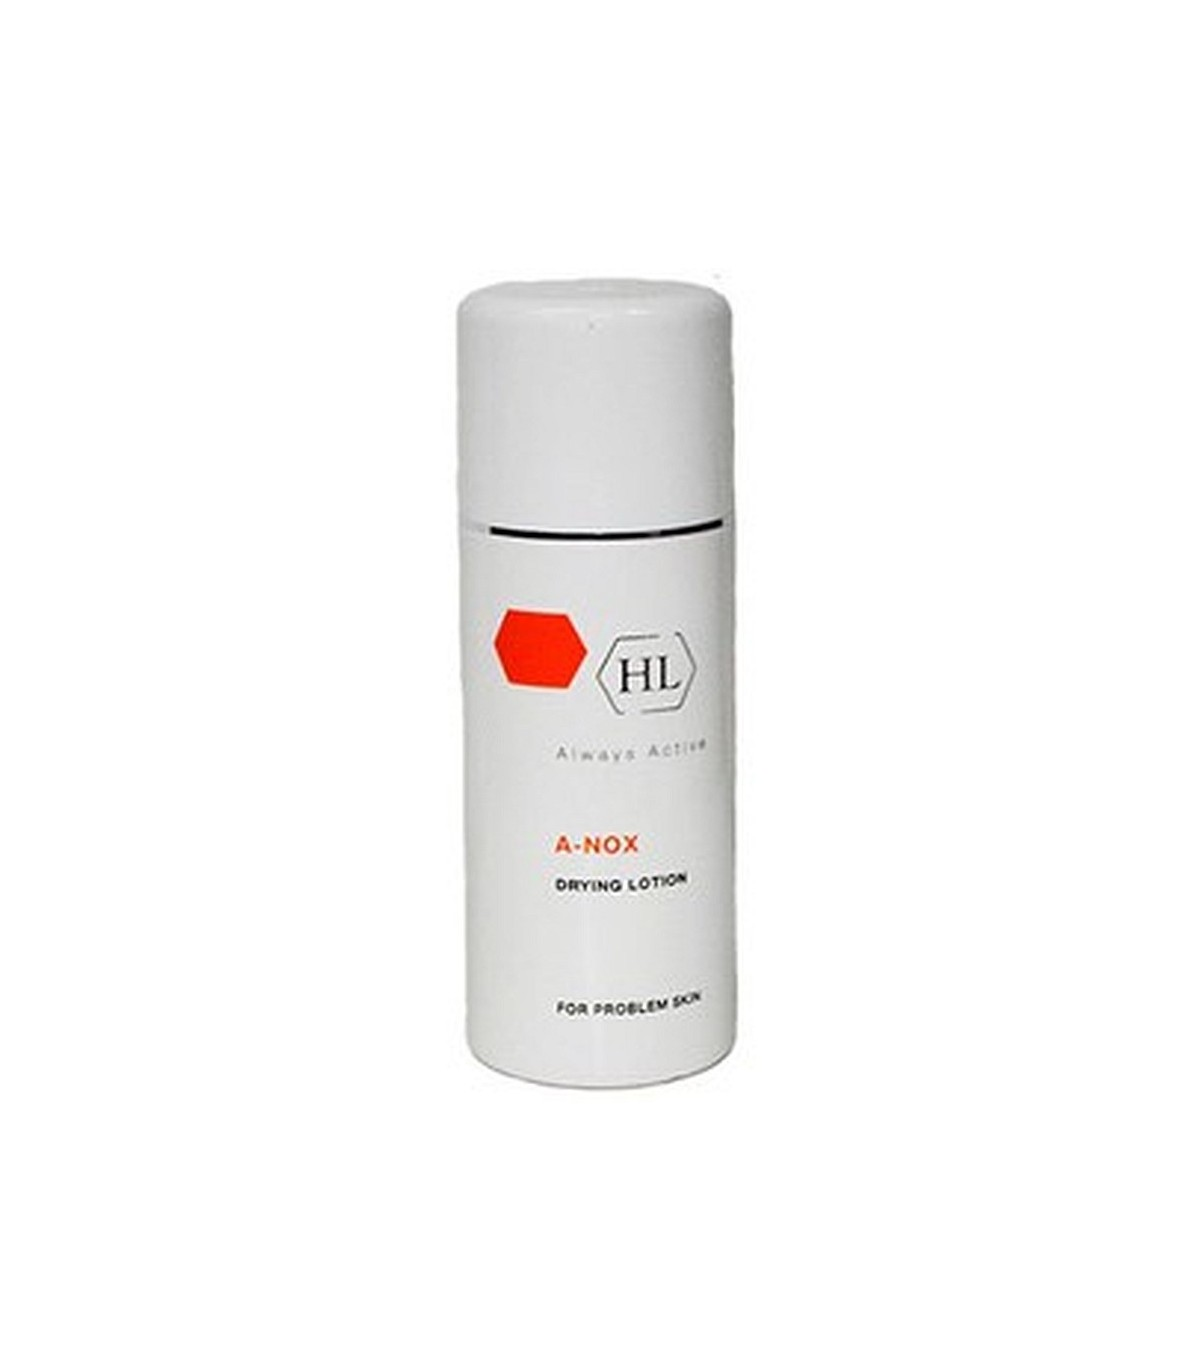 Drying Lotion - Serie A-NOX - Holy Land - 125 ml